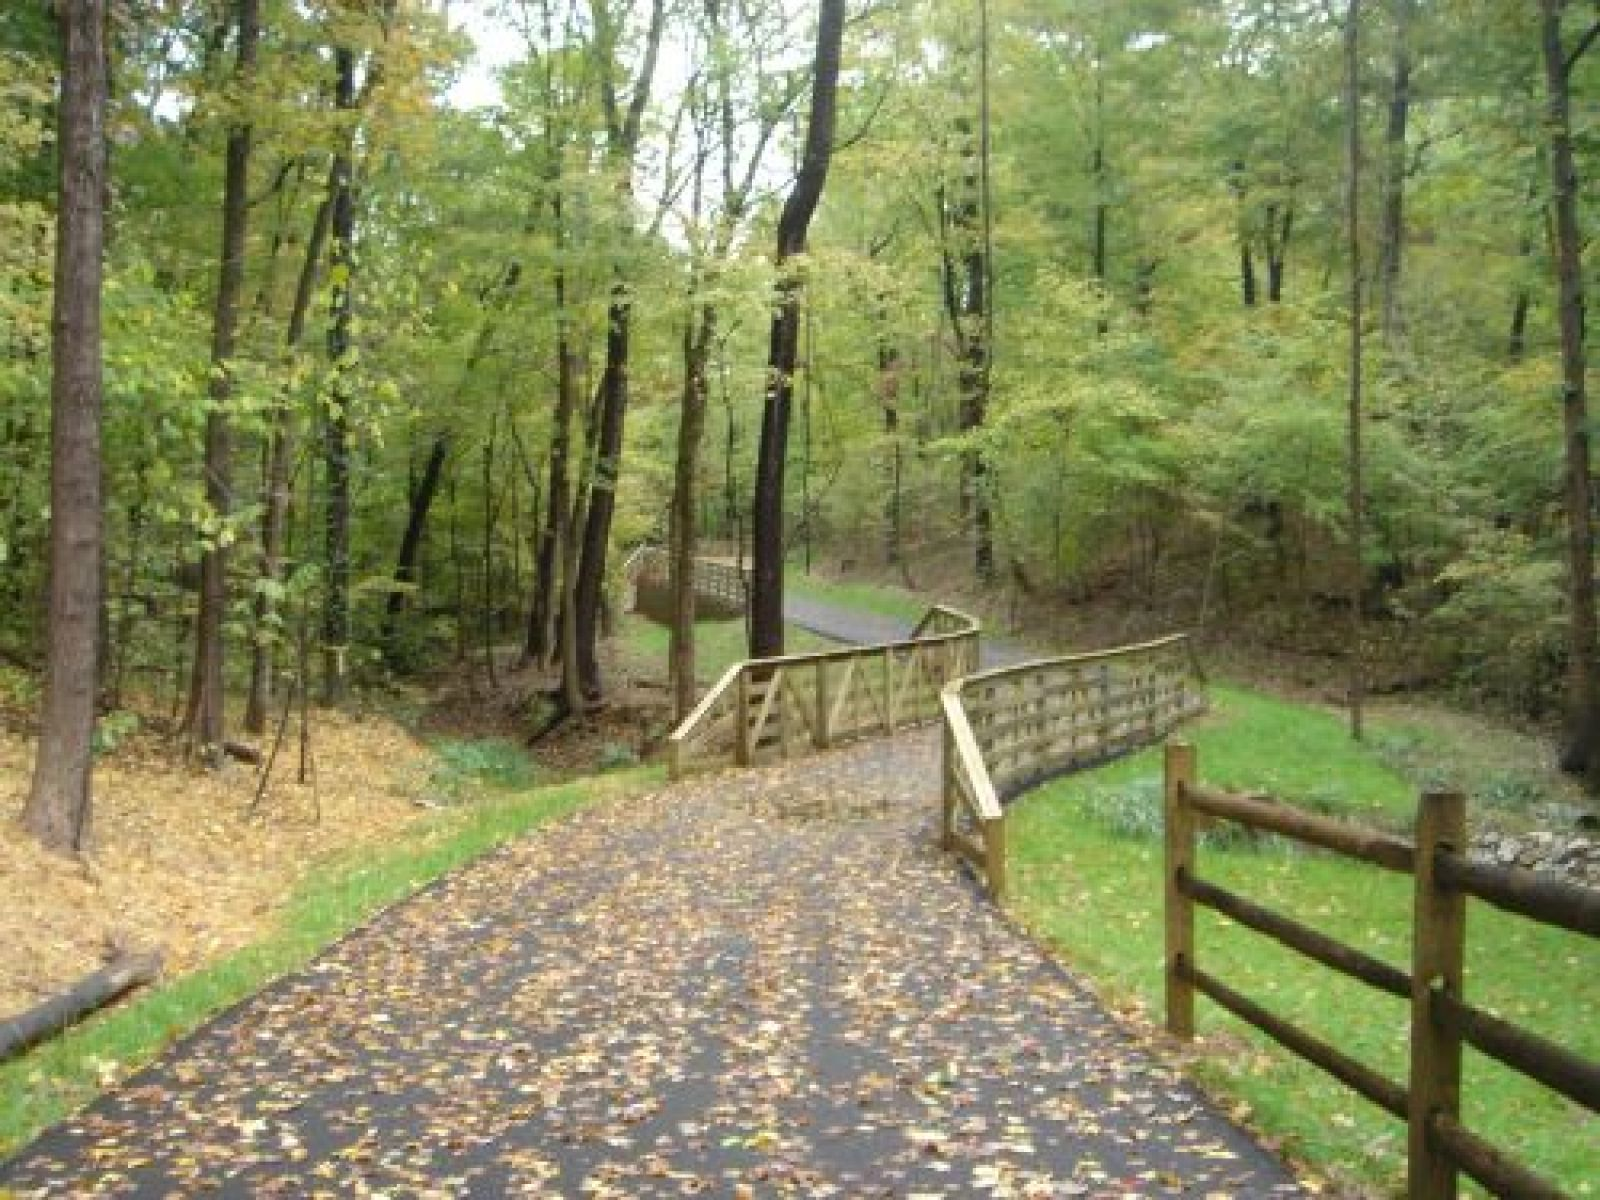 photo: Burdette Park-University Southern Indiana Pedestrian, Bicycle, and Nature Trail